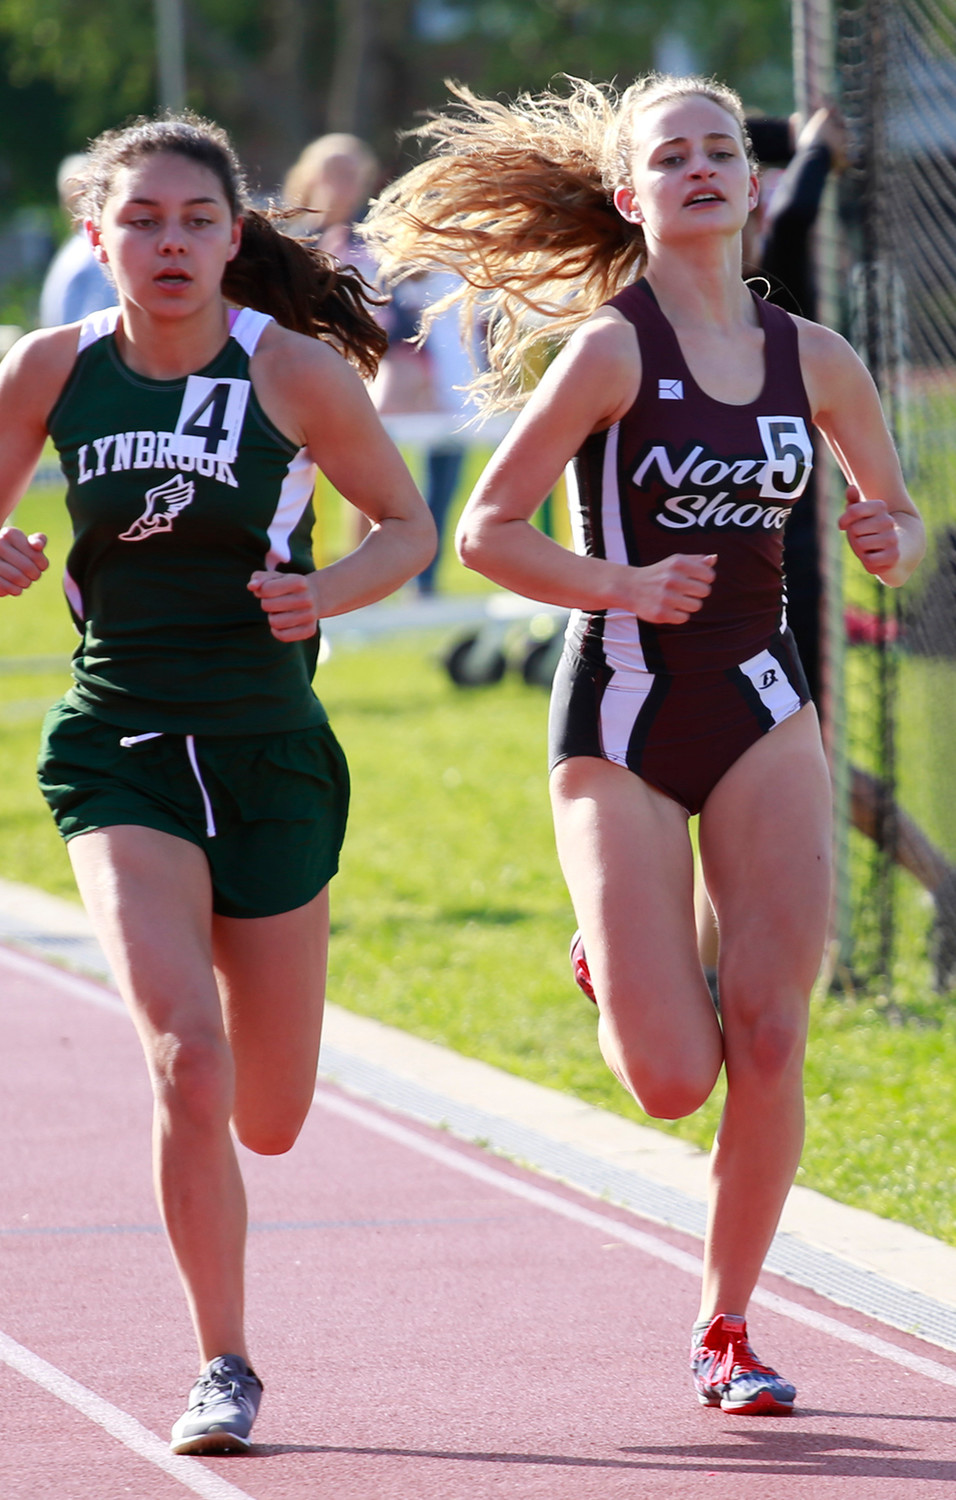 North Shore's Isabella Strajanekova, right, finished second in the 2000 meter steeplechase at the Nassau Class A championship meet on May 24.